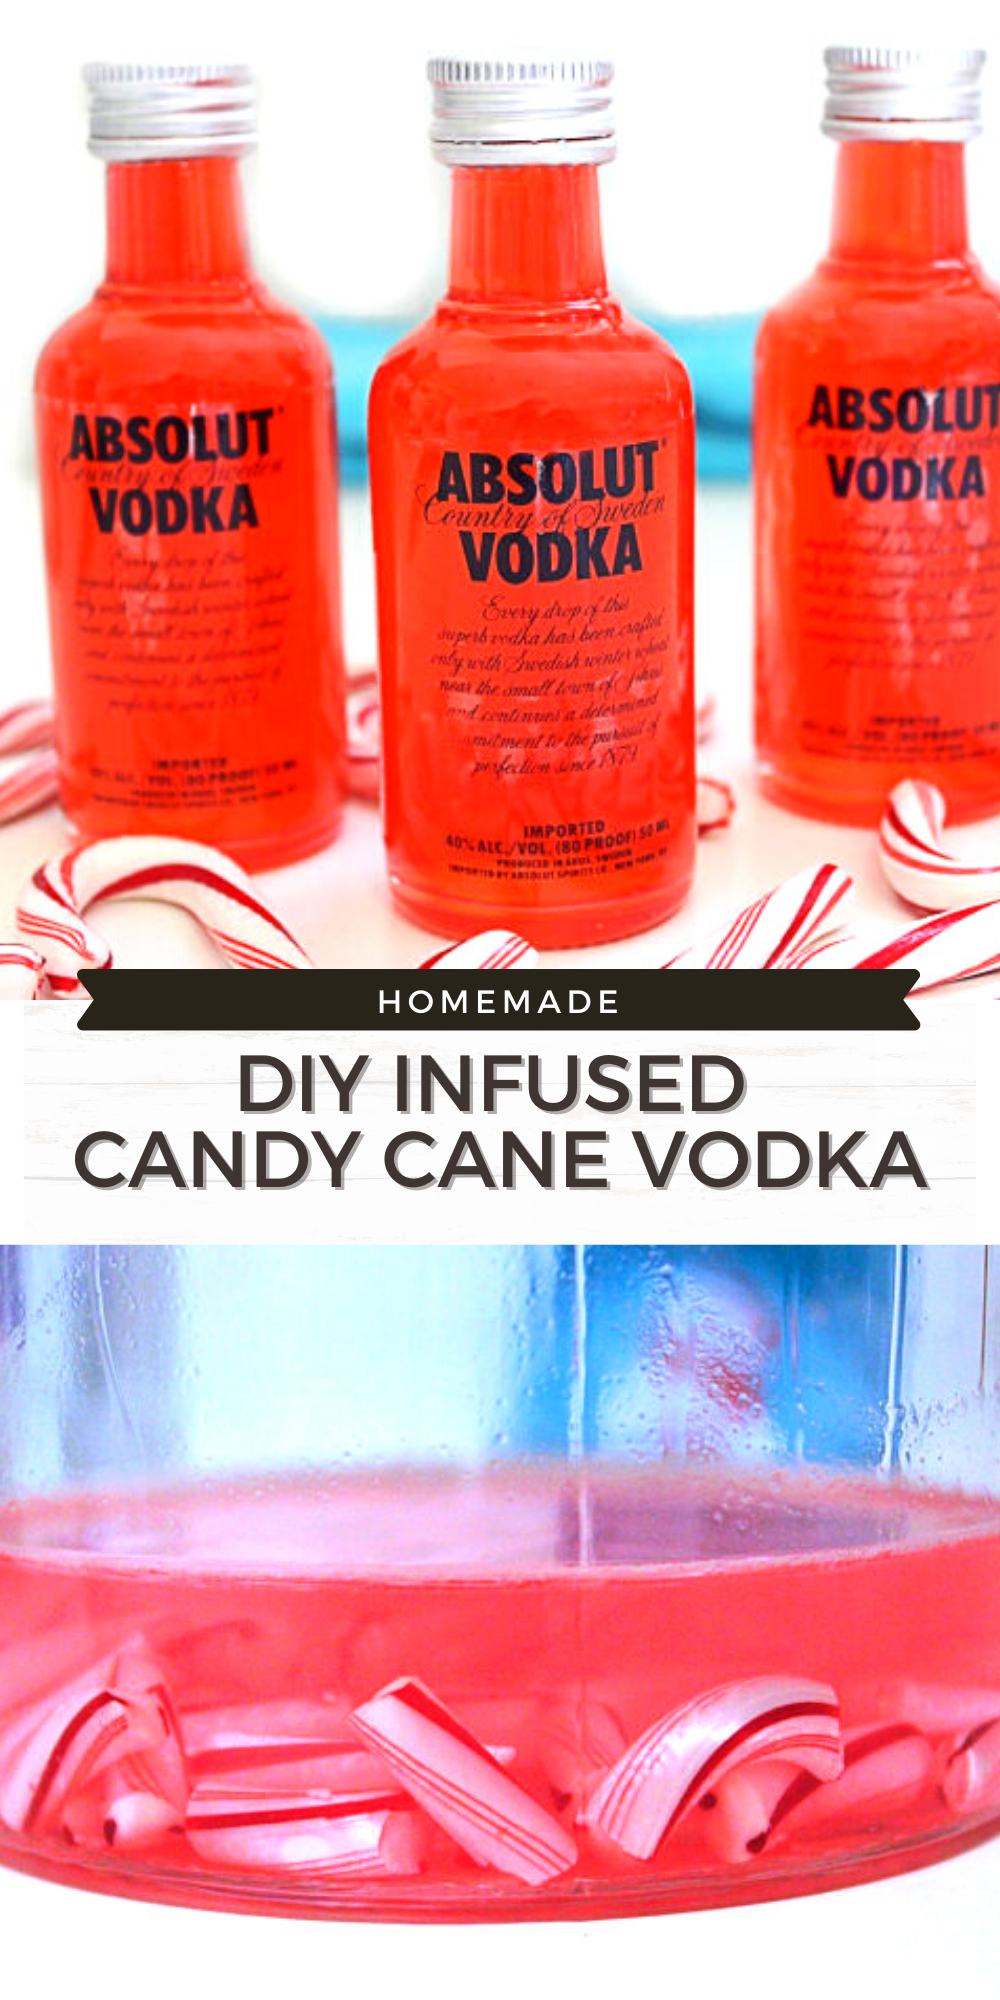 This infused Candy Cane Vodka is perfect to make for friend and family for Christmas! I love making these little bottle as gifts and as stocking stuffers for adult friends and family members.